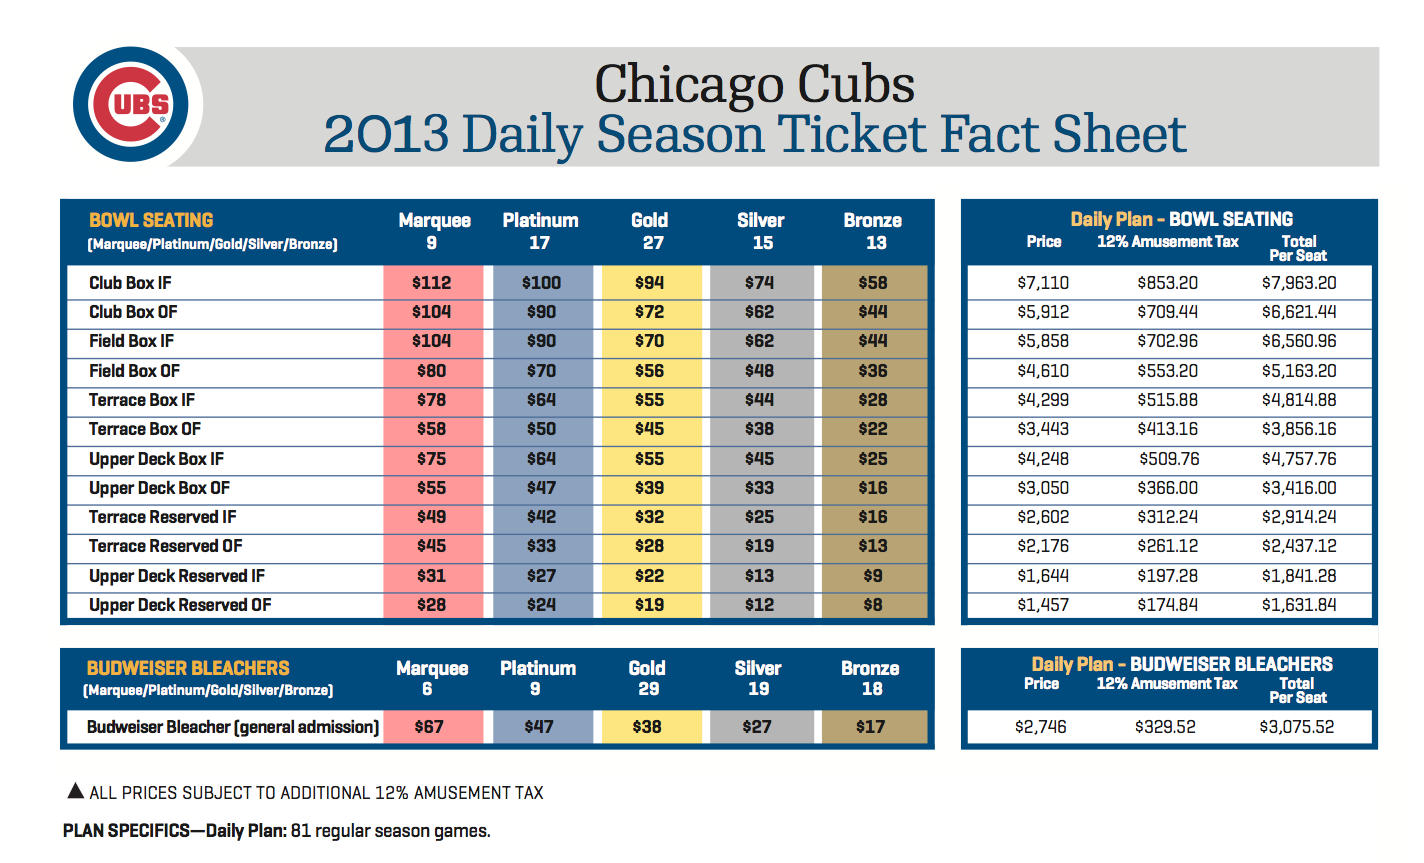 Cubs Home Game Ticket Price Average